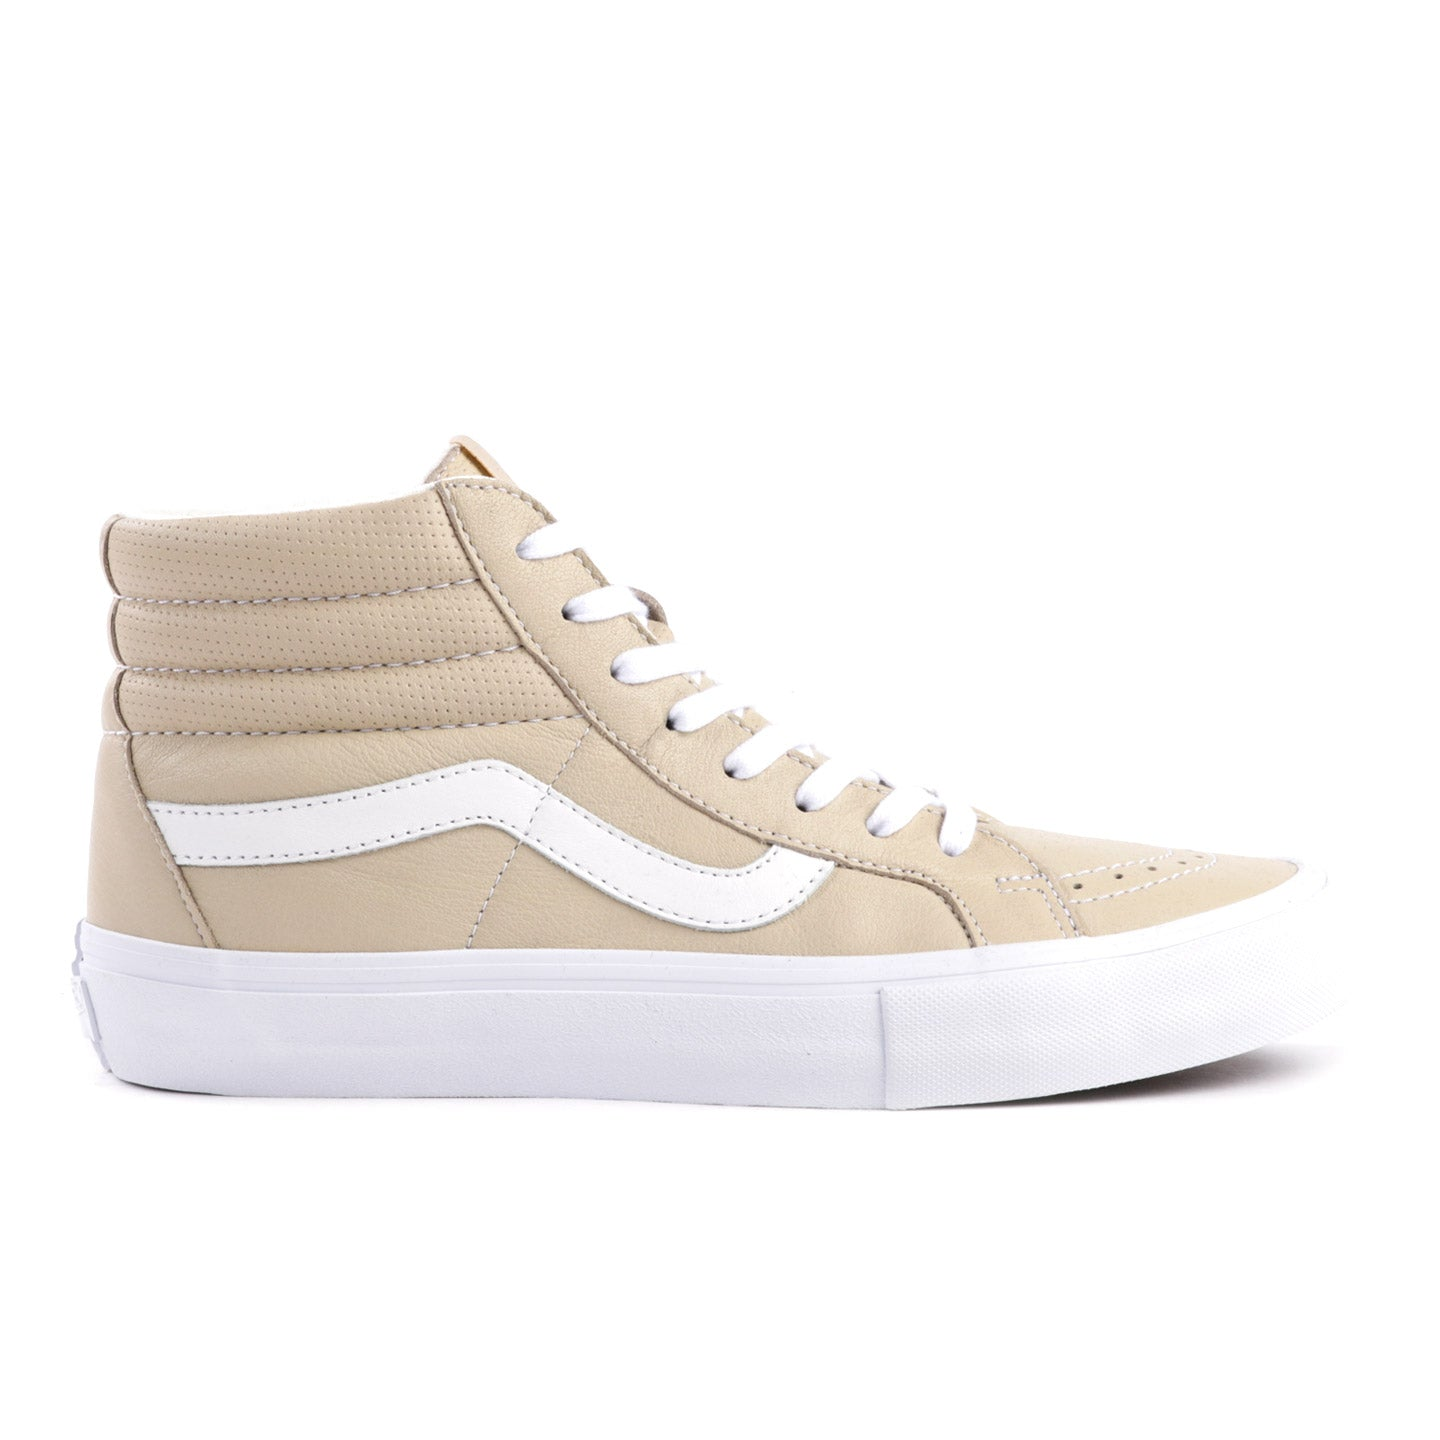 VAULT BY VANS SK8-HI REISSUE LX ITALIAN LEATHER MARMO